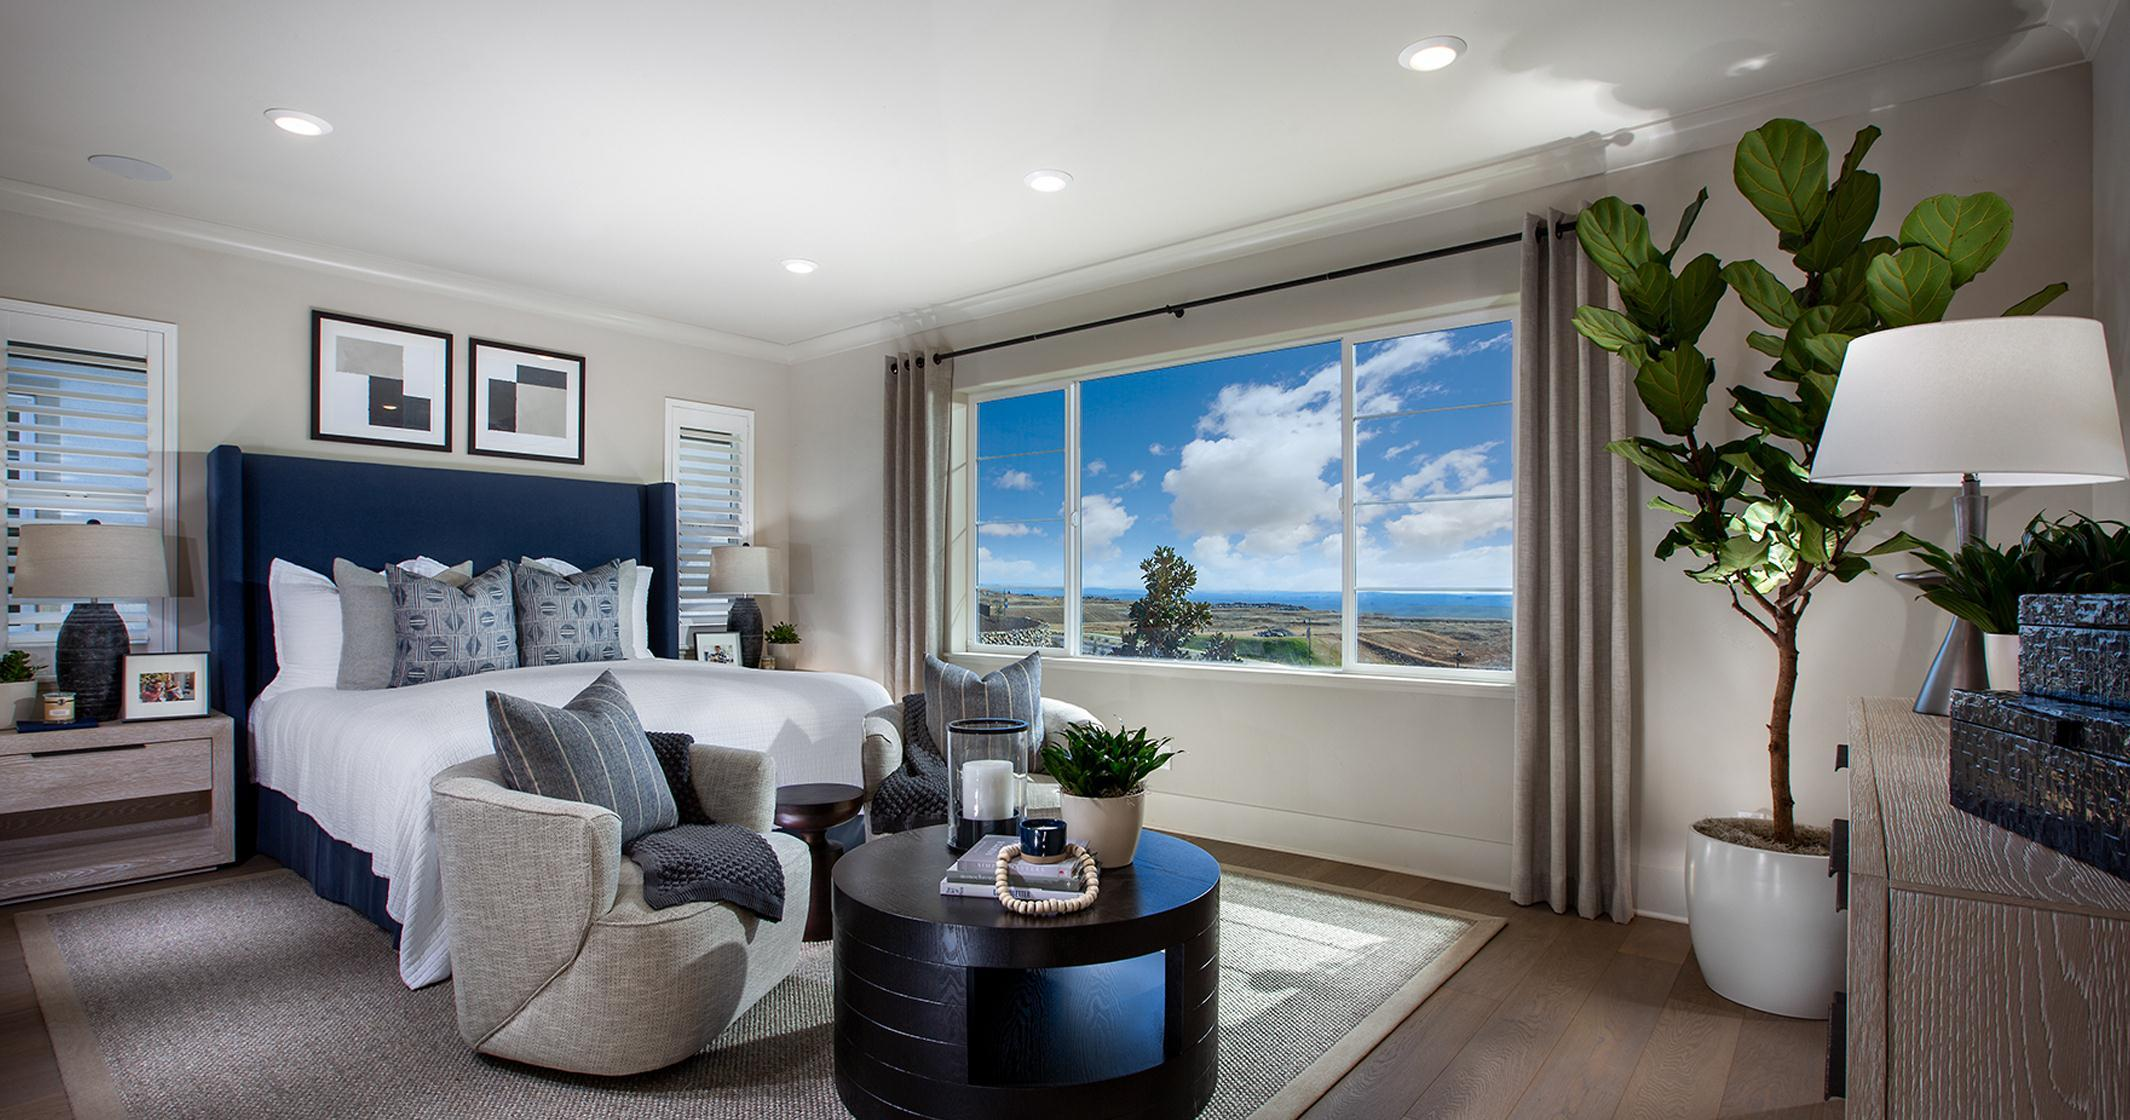 Bedroom featured in the Plan 4 By The New Home Company in Sacramento, CA